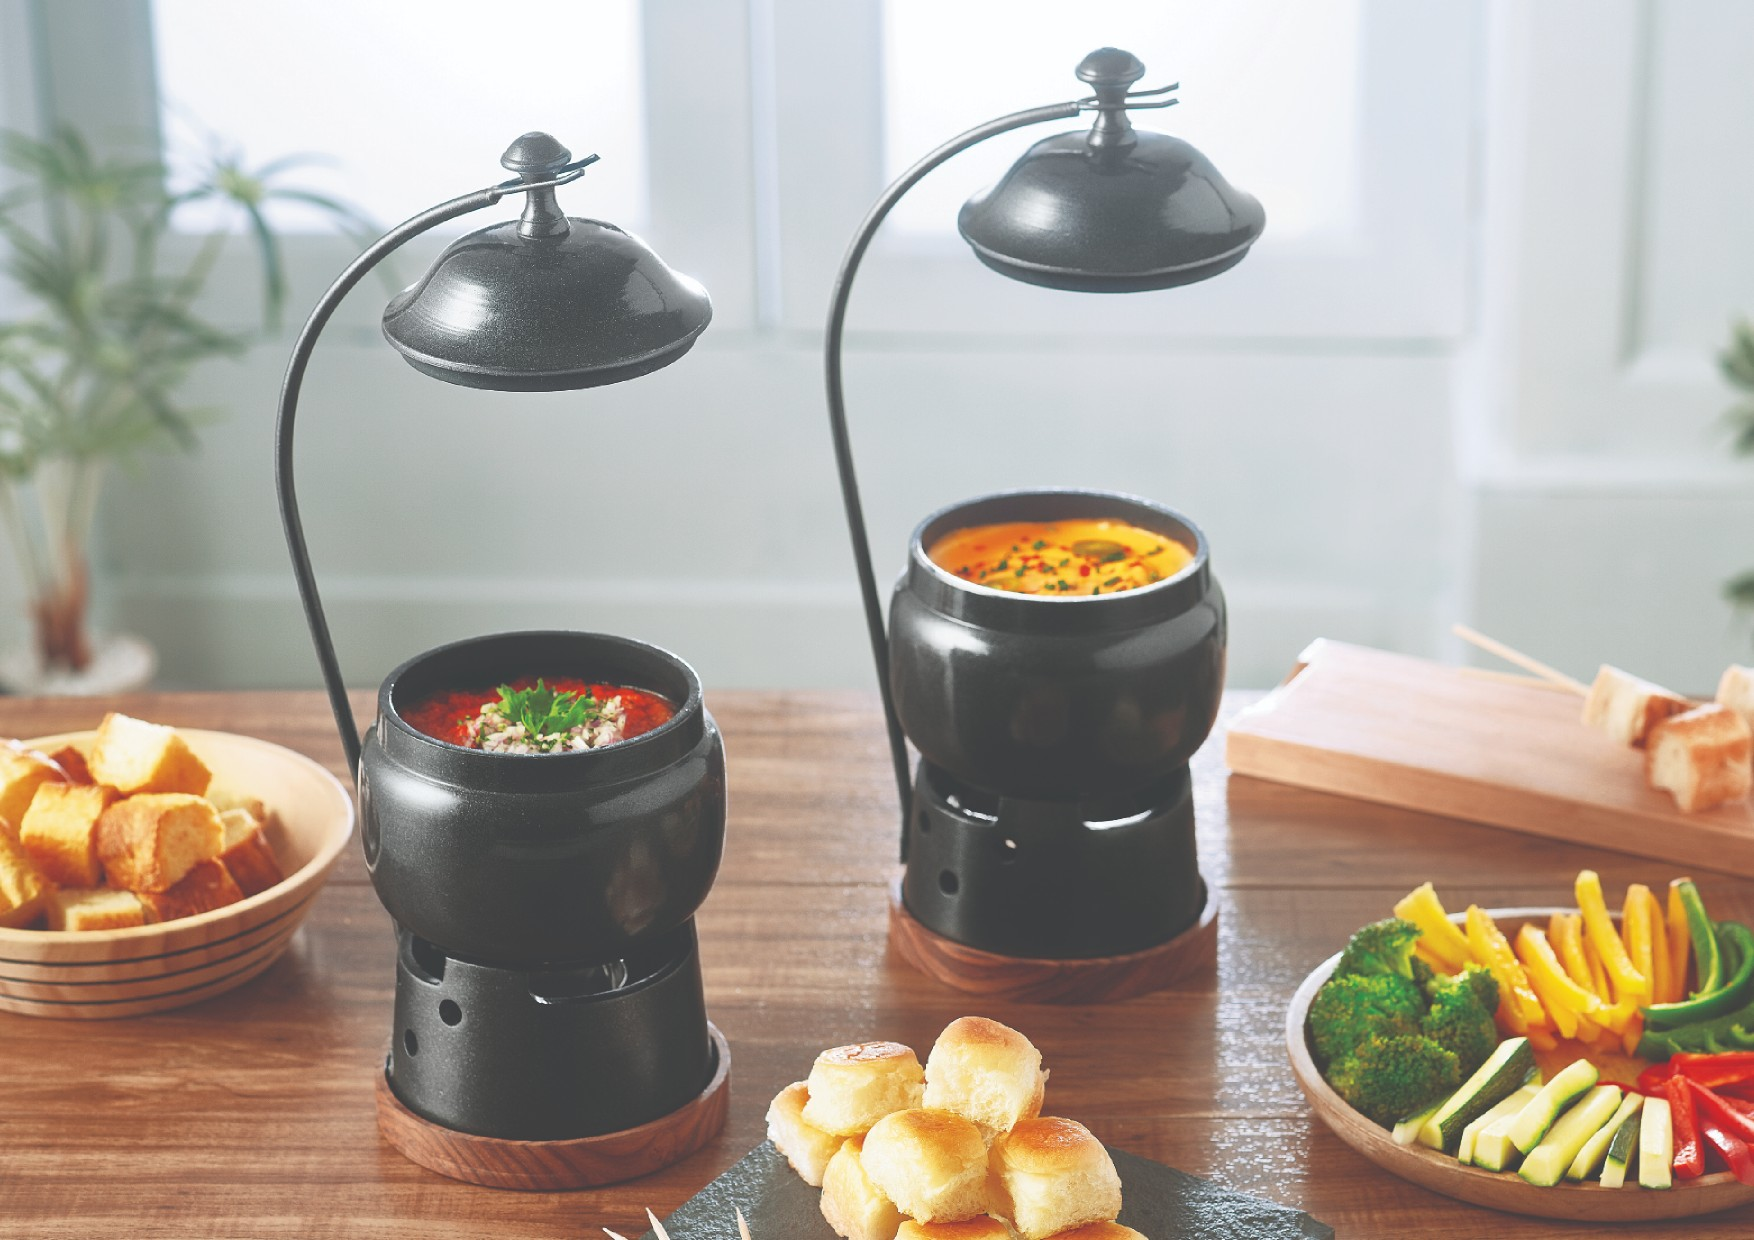 Fondue Pot W. Hanging Lid Metal Serving Sets in Black Colour by Songbird